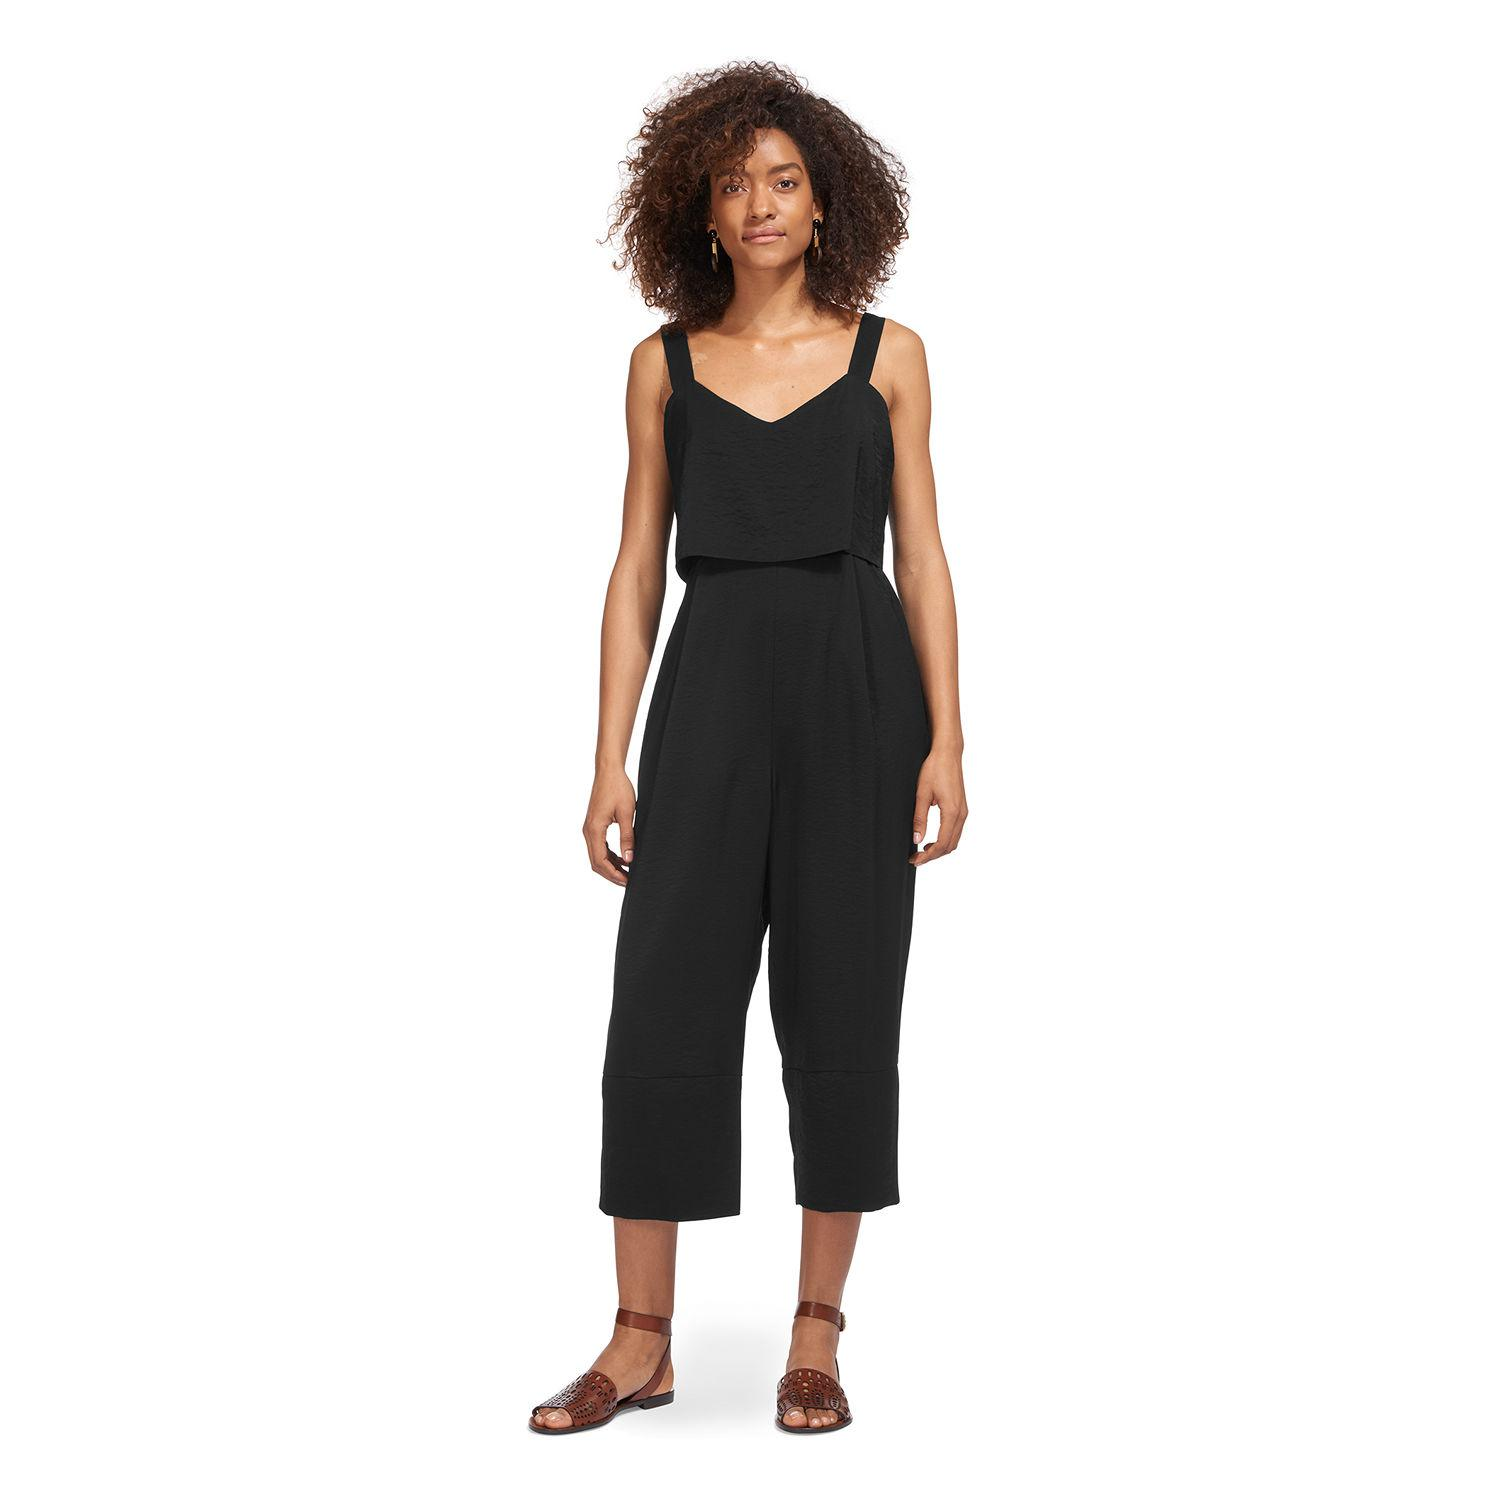 b27ef8c85c6 Whistles - Black Lucy Strappy Jumpsuit - Lyst. View fullscreen